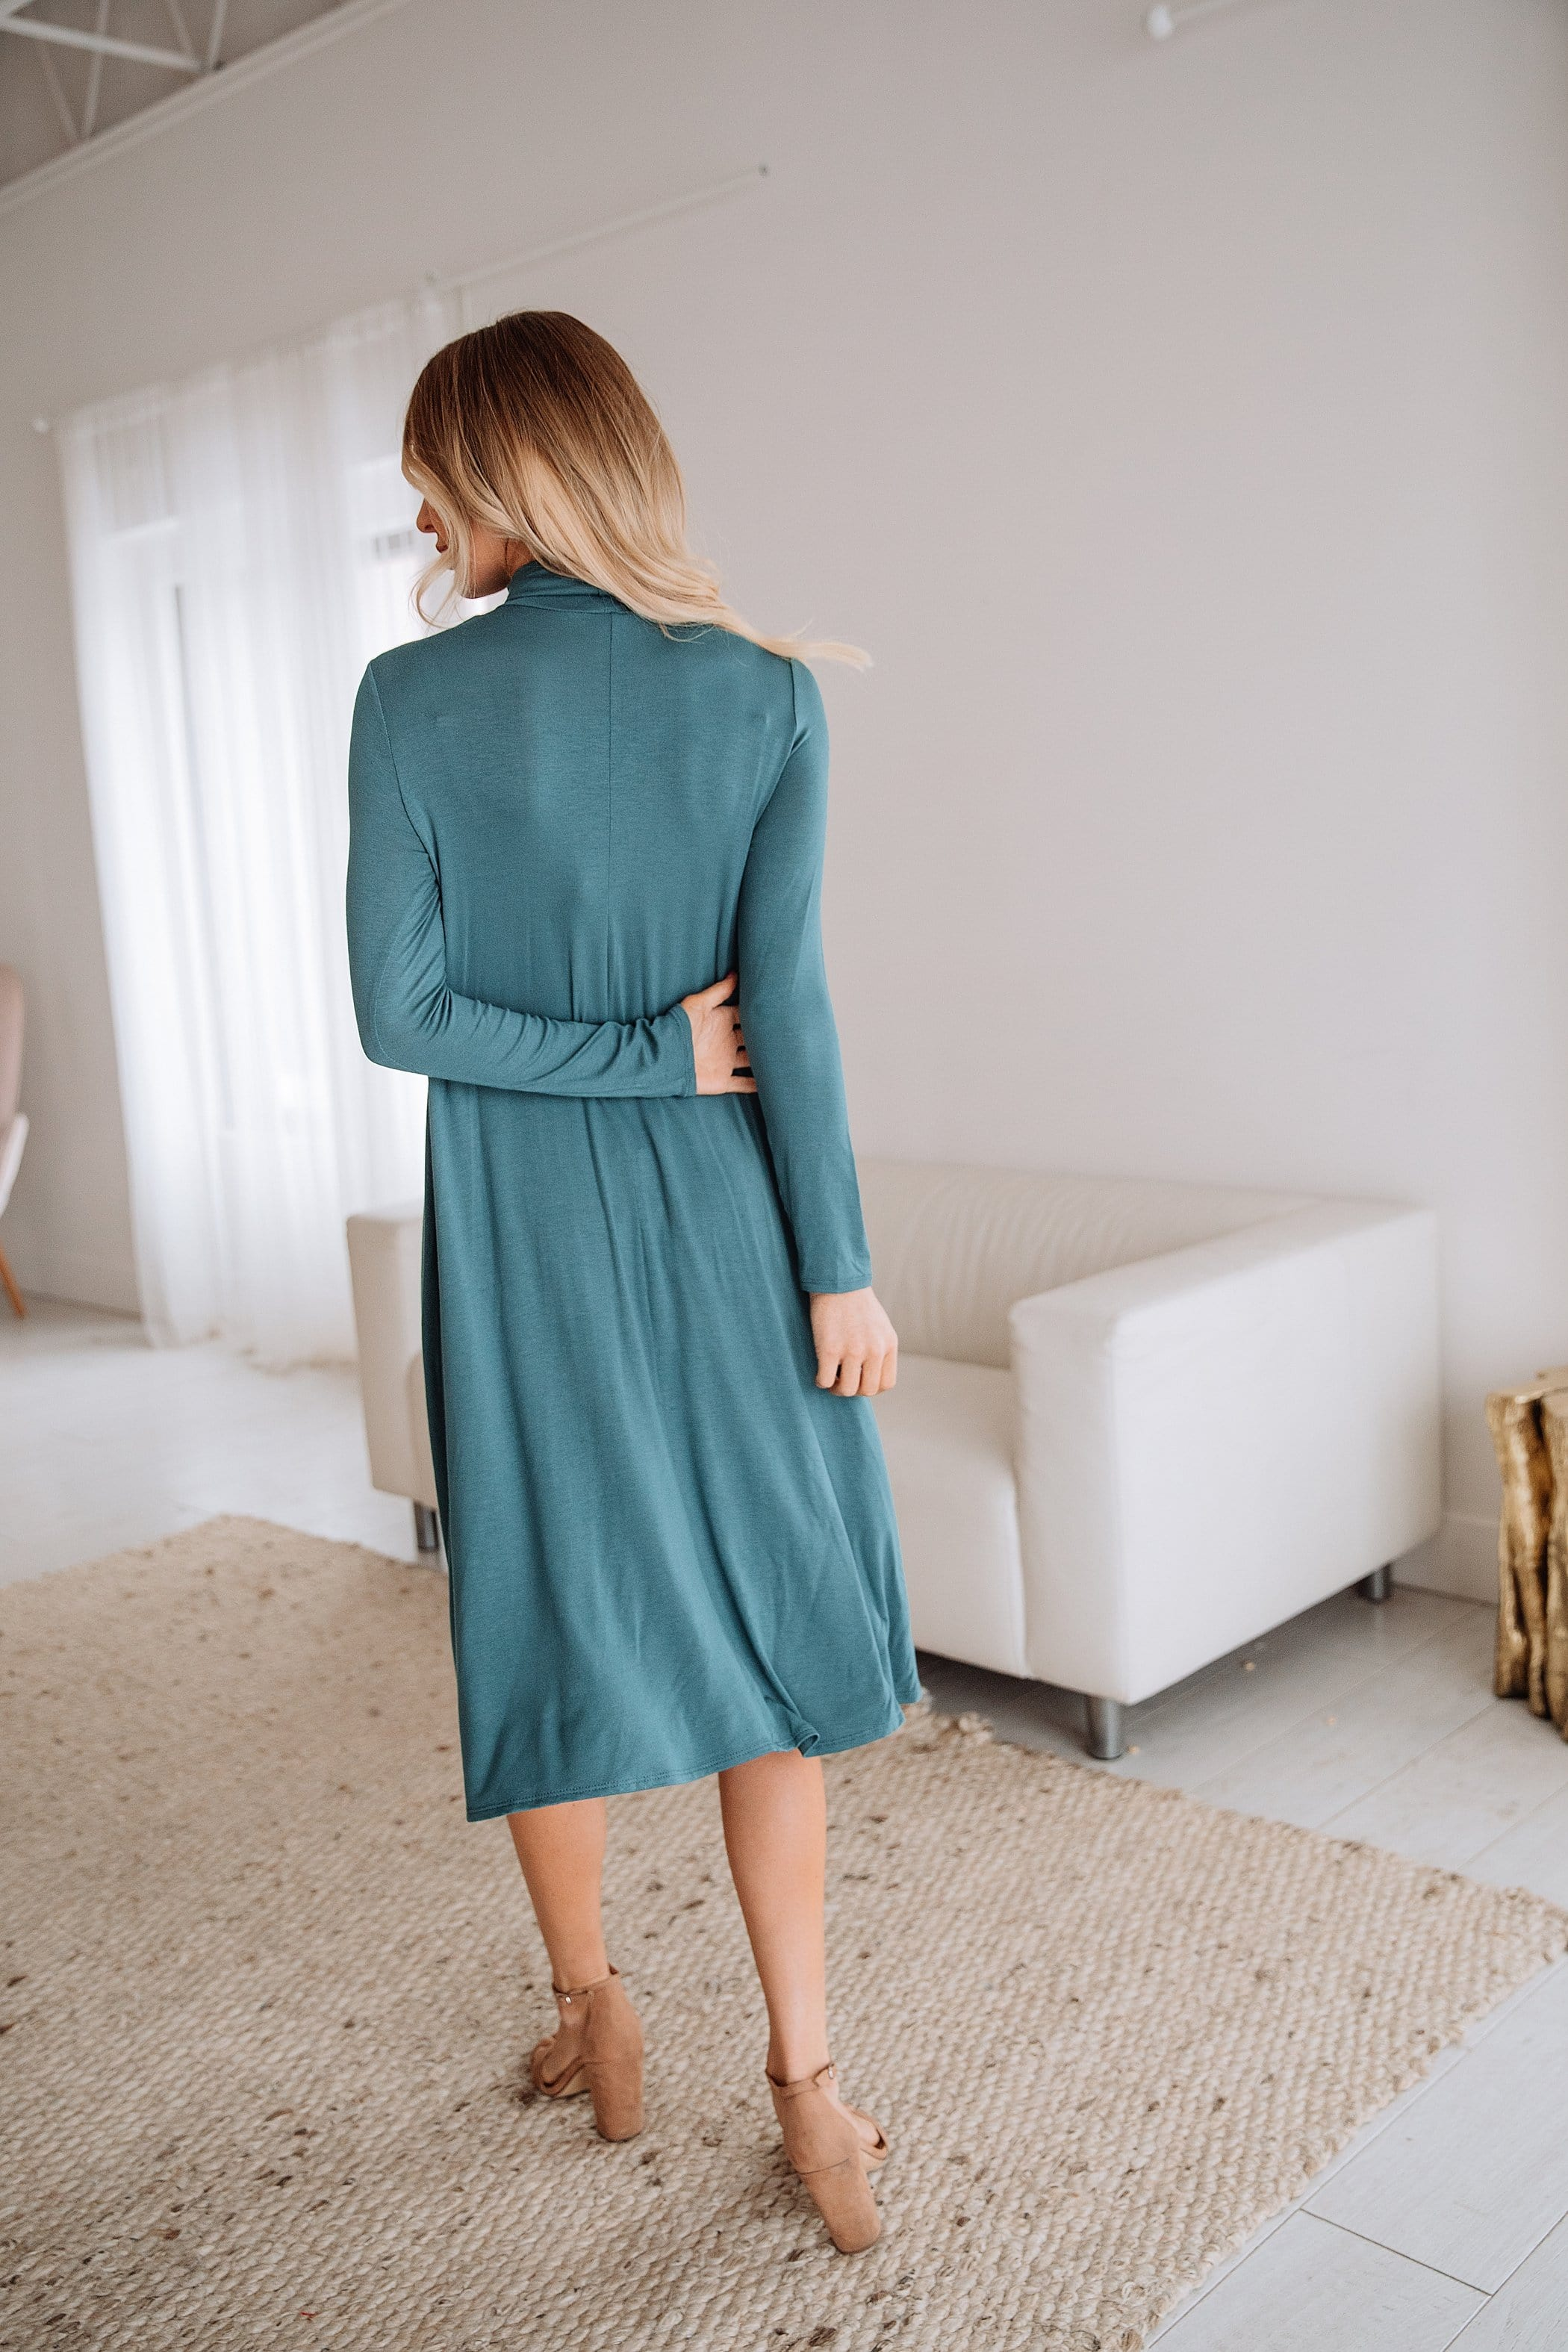 The Hinckley Midi Dress in Teal